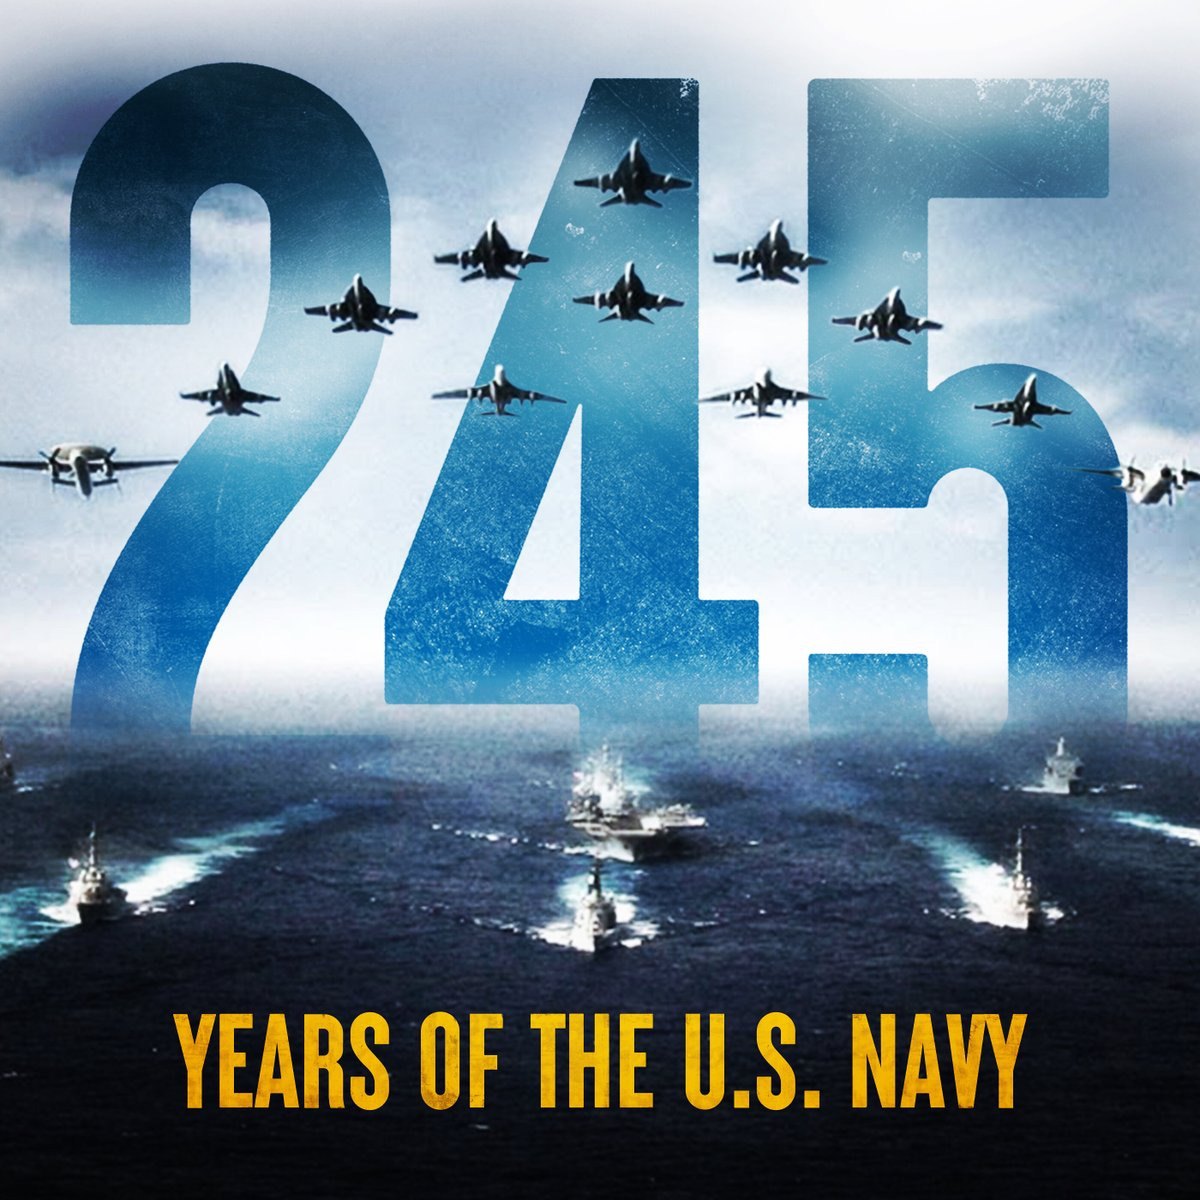 Today, we celebrate 245 years of those forged by the sea, who are and will remain the most lethal global maneuver force in the world. Happy Birthday, U.S. Navy!